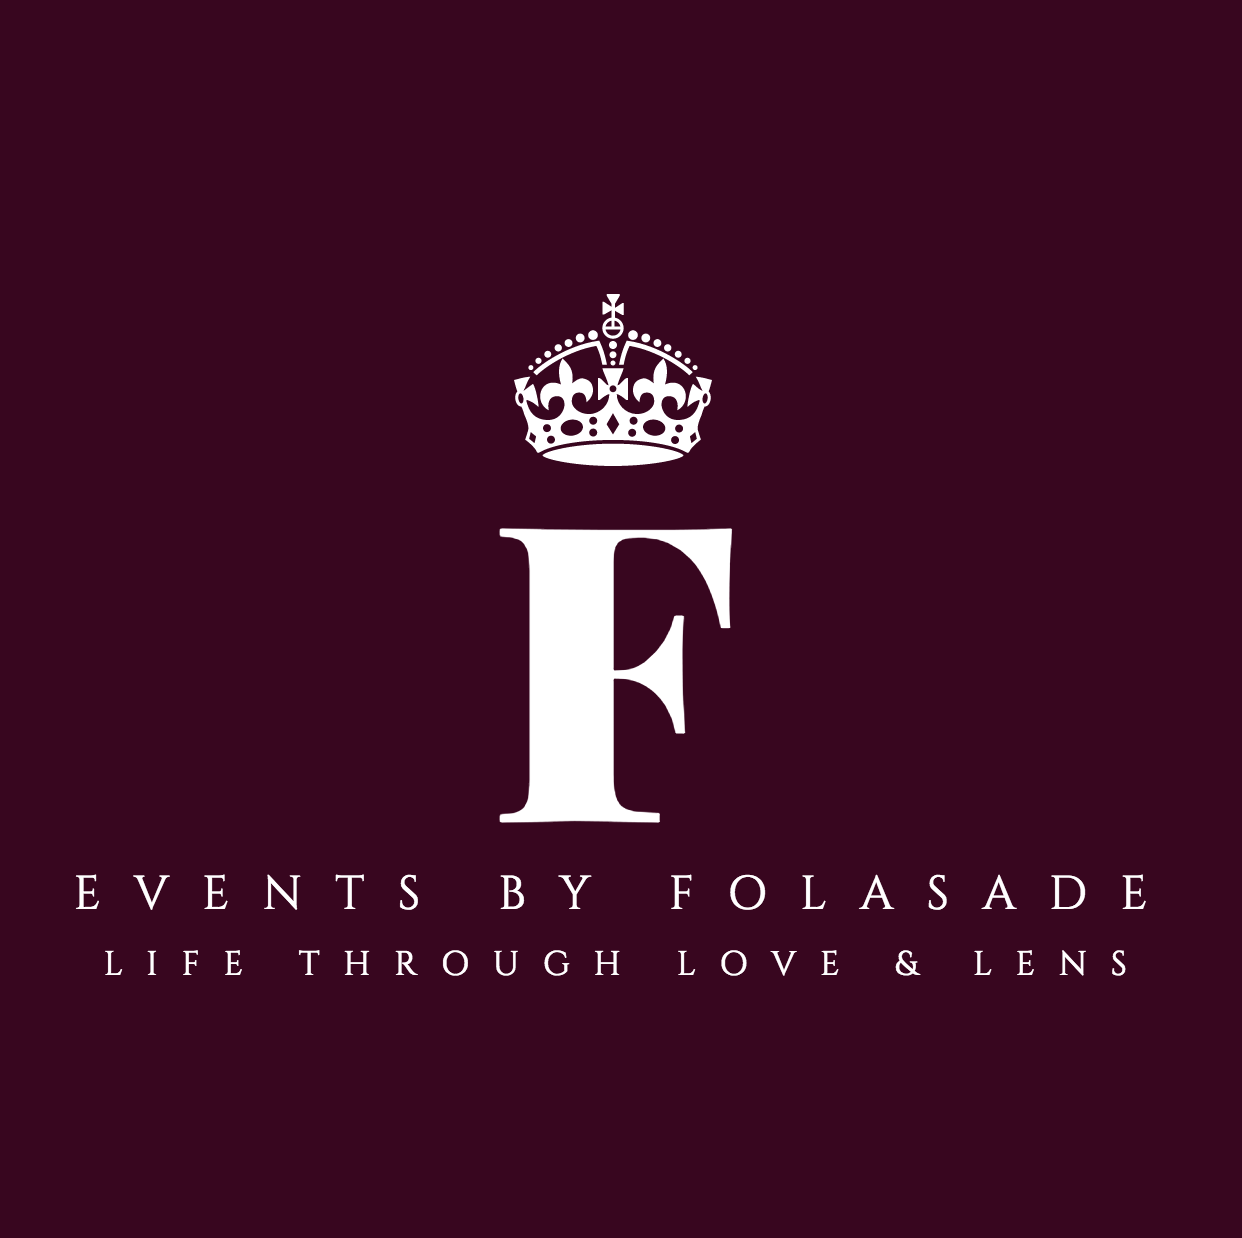 Events by Folasade